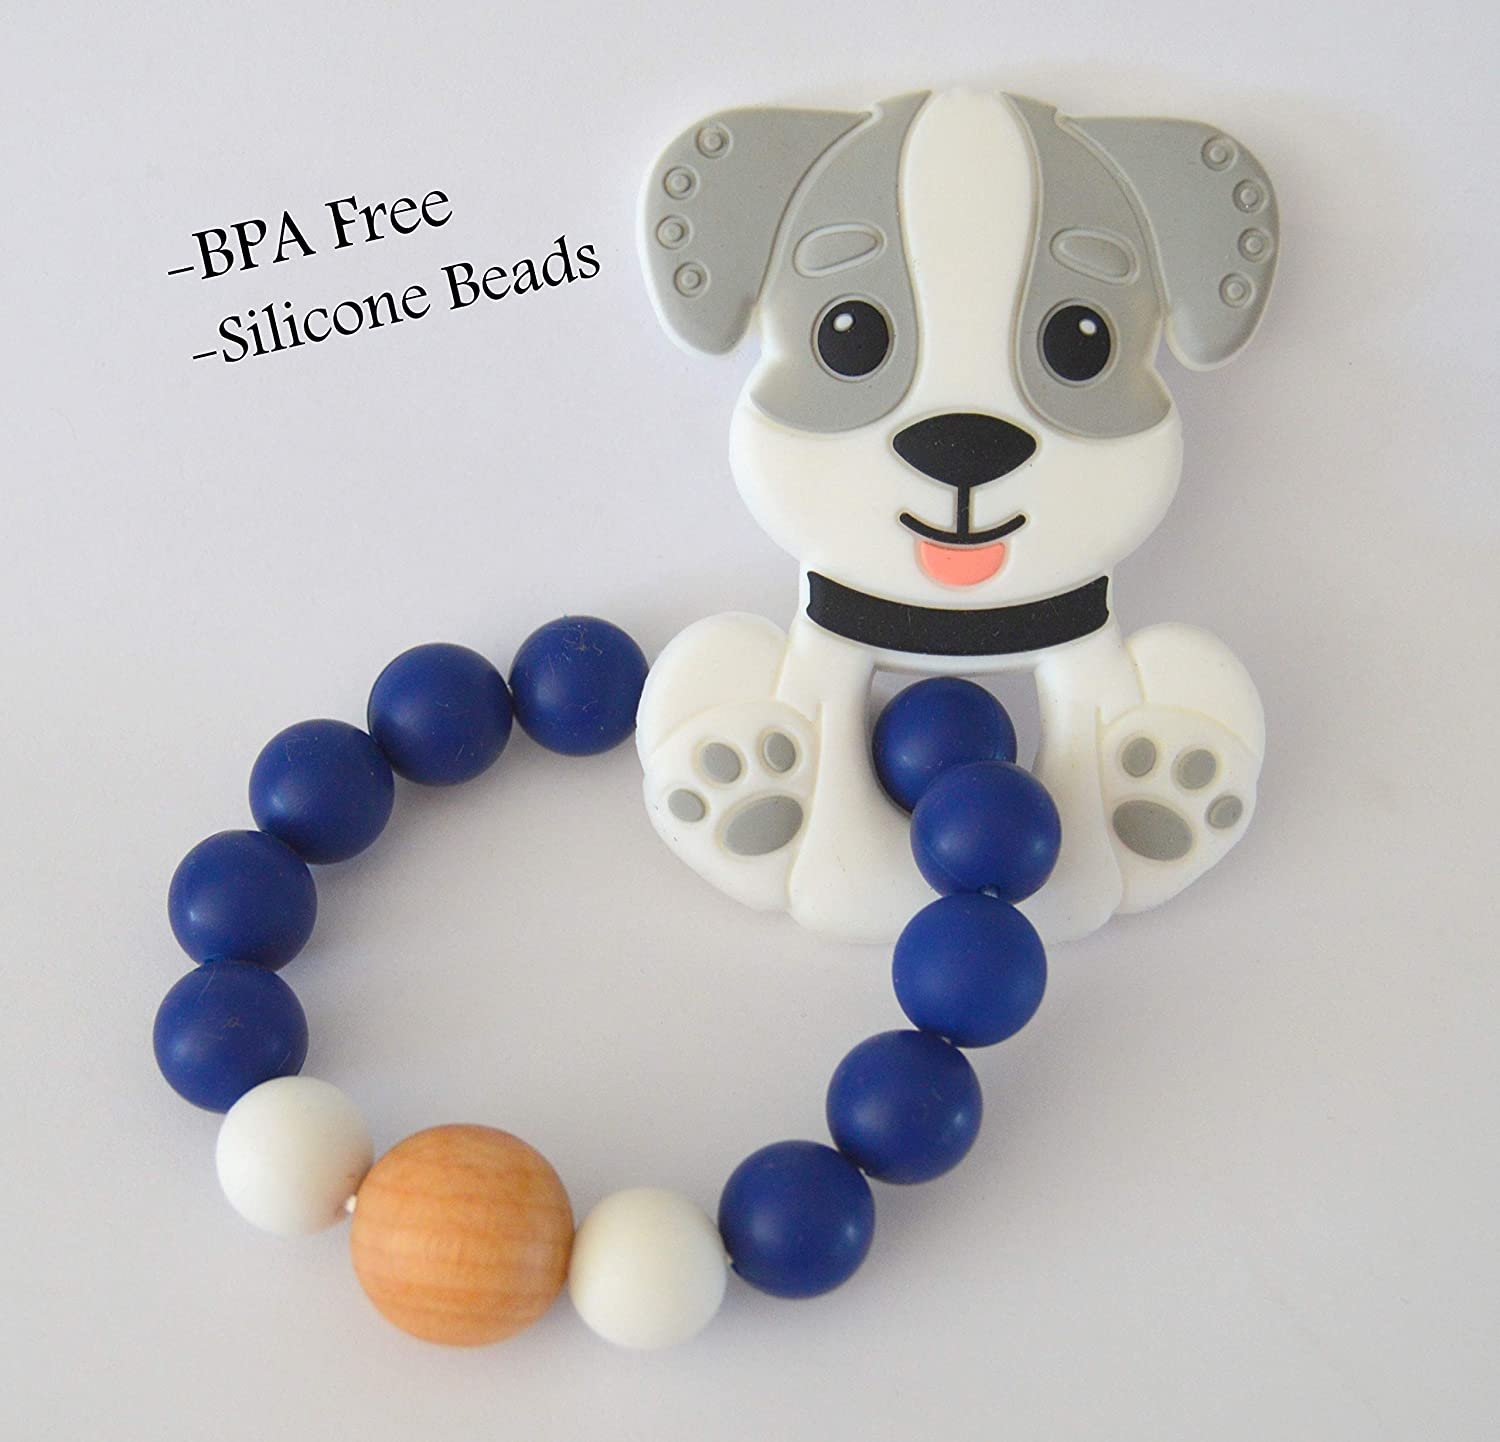 Black Premier HomeGoods BPA Free Baby Teething Toys Silicone Puppy Teether Chew Beaded Newborn Boys Girls Gifts